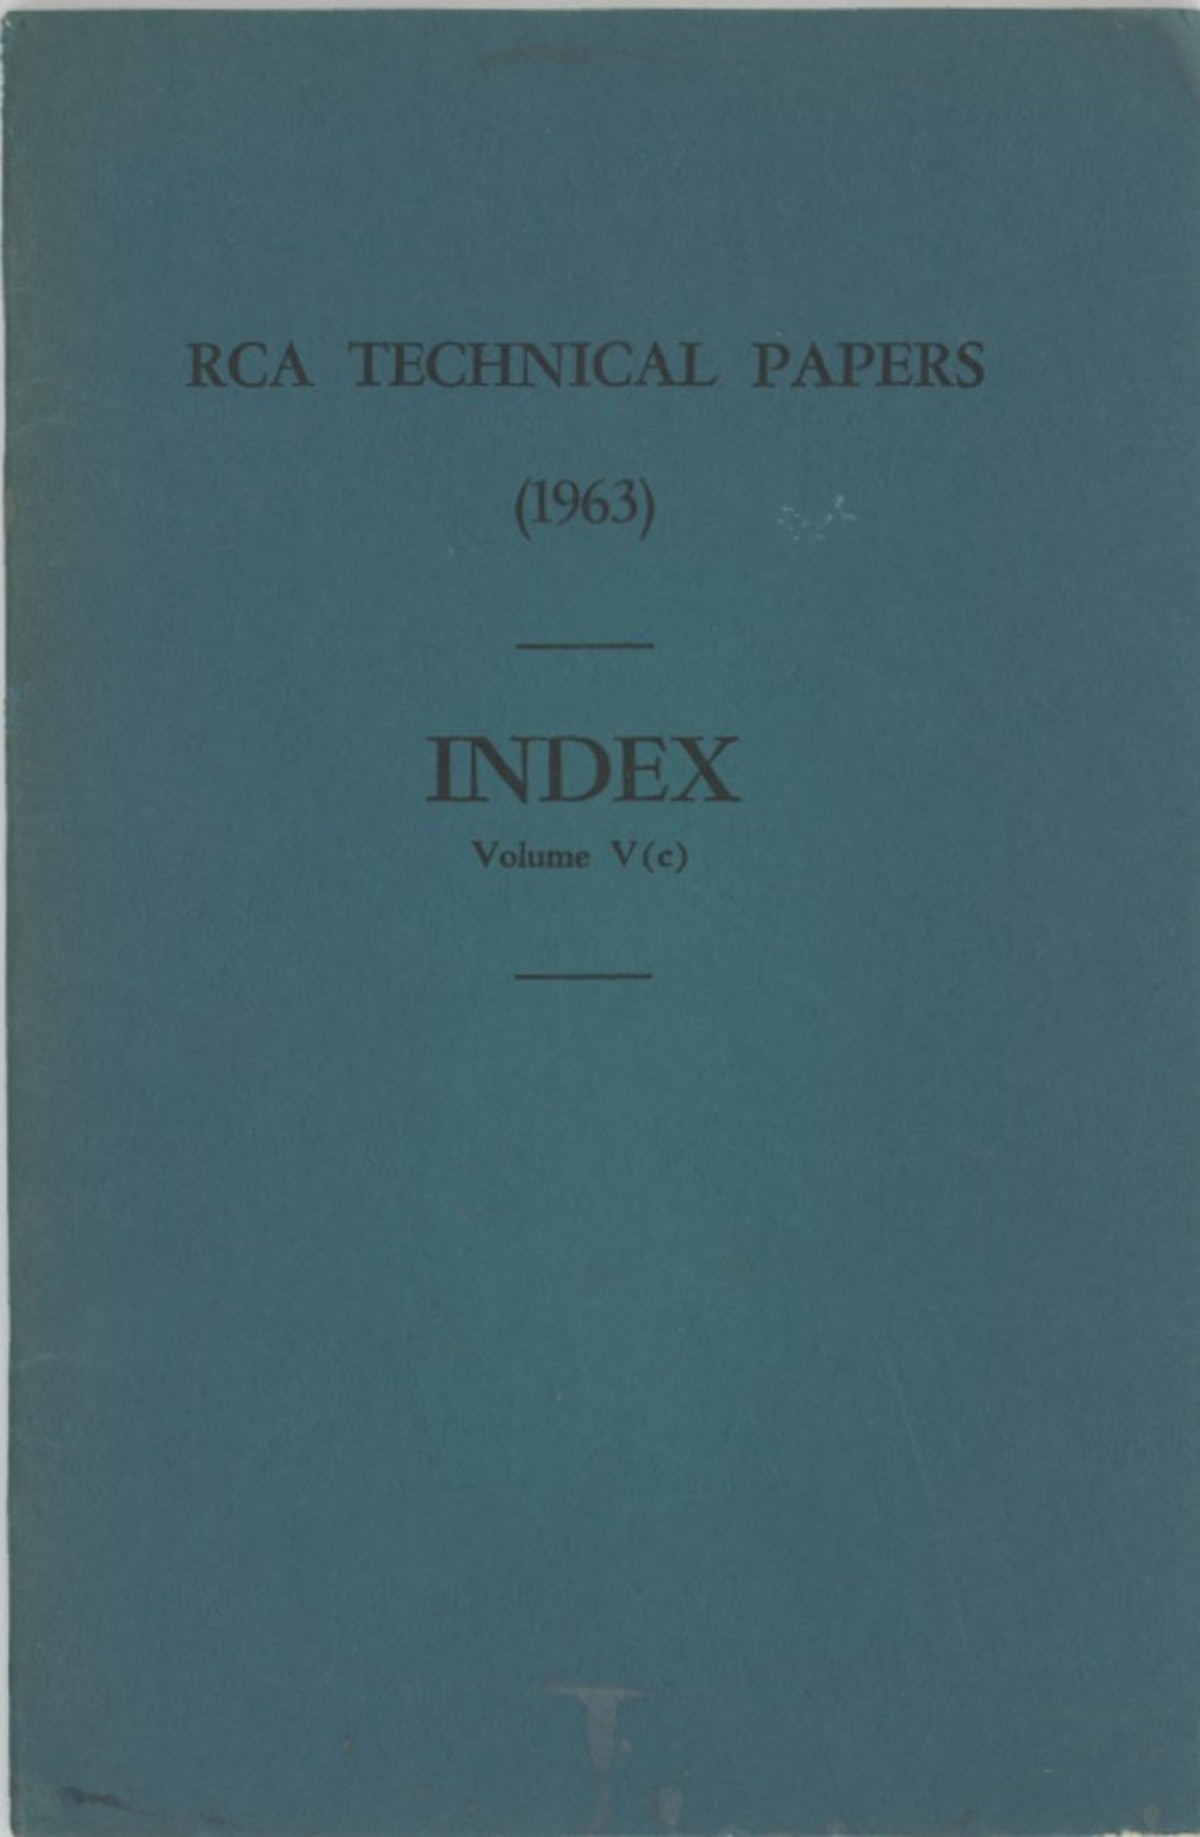 RCA Technical Papers Index Volume V (c)